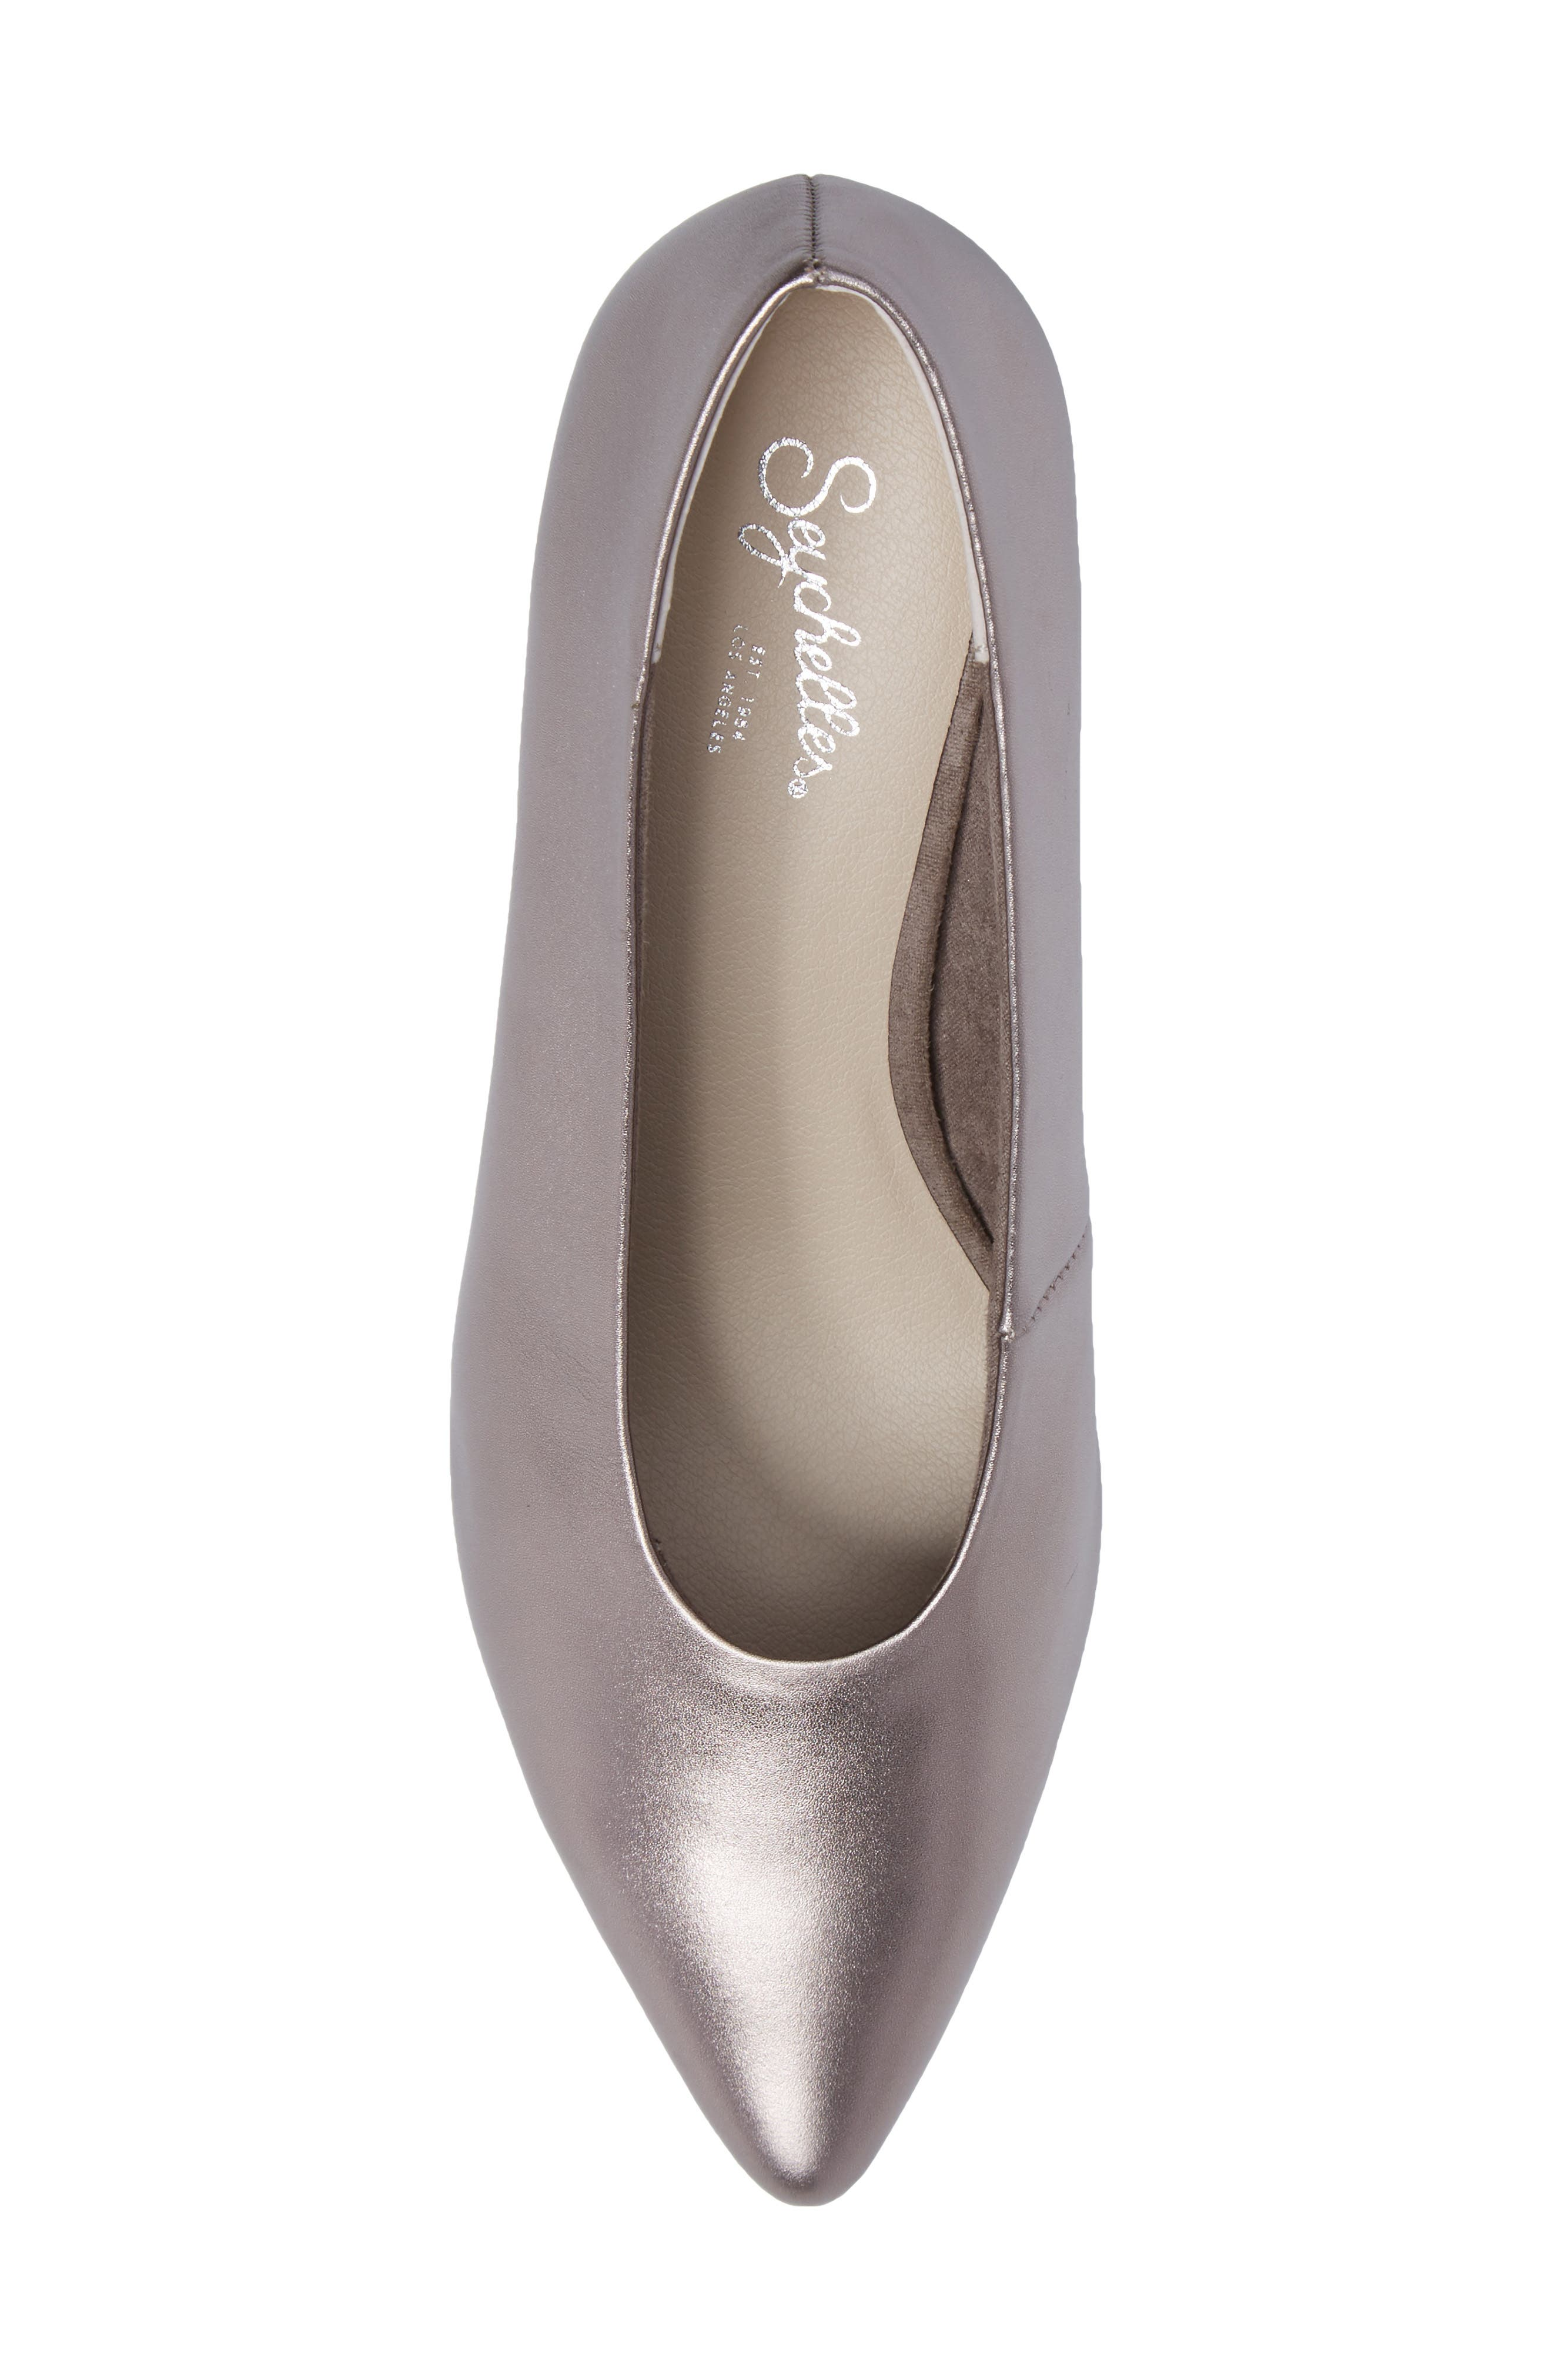 Rehearse Pointy Toe Pump,                             Alternate thumbnail 18, color,